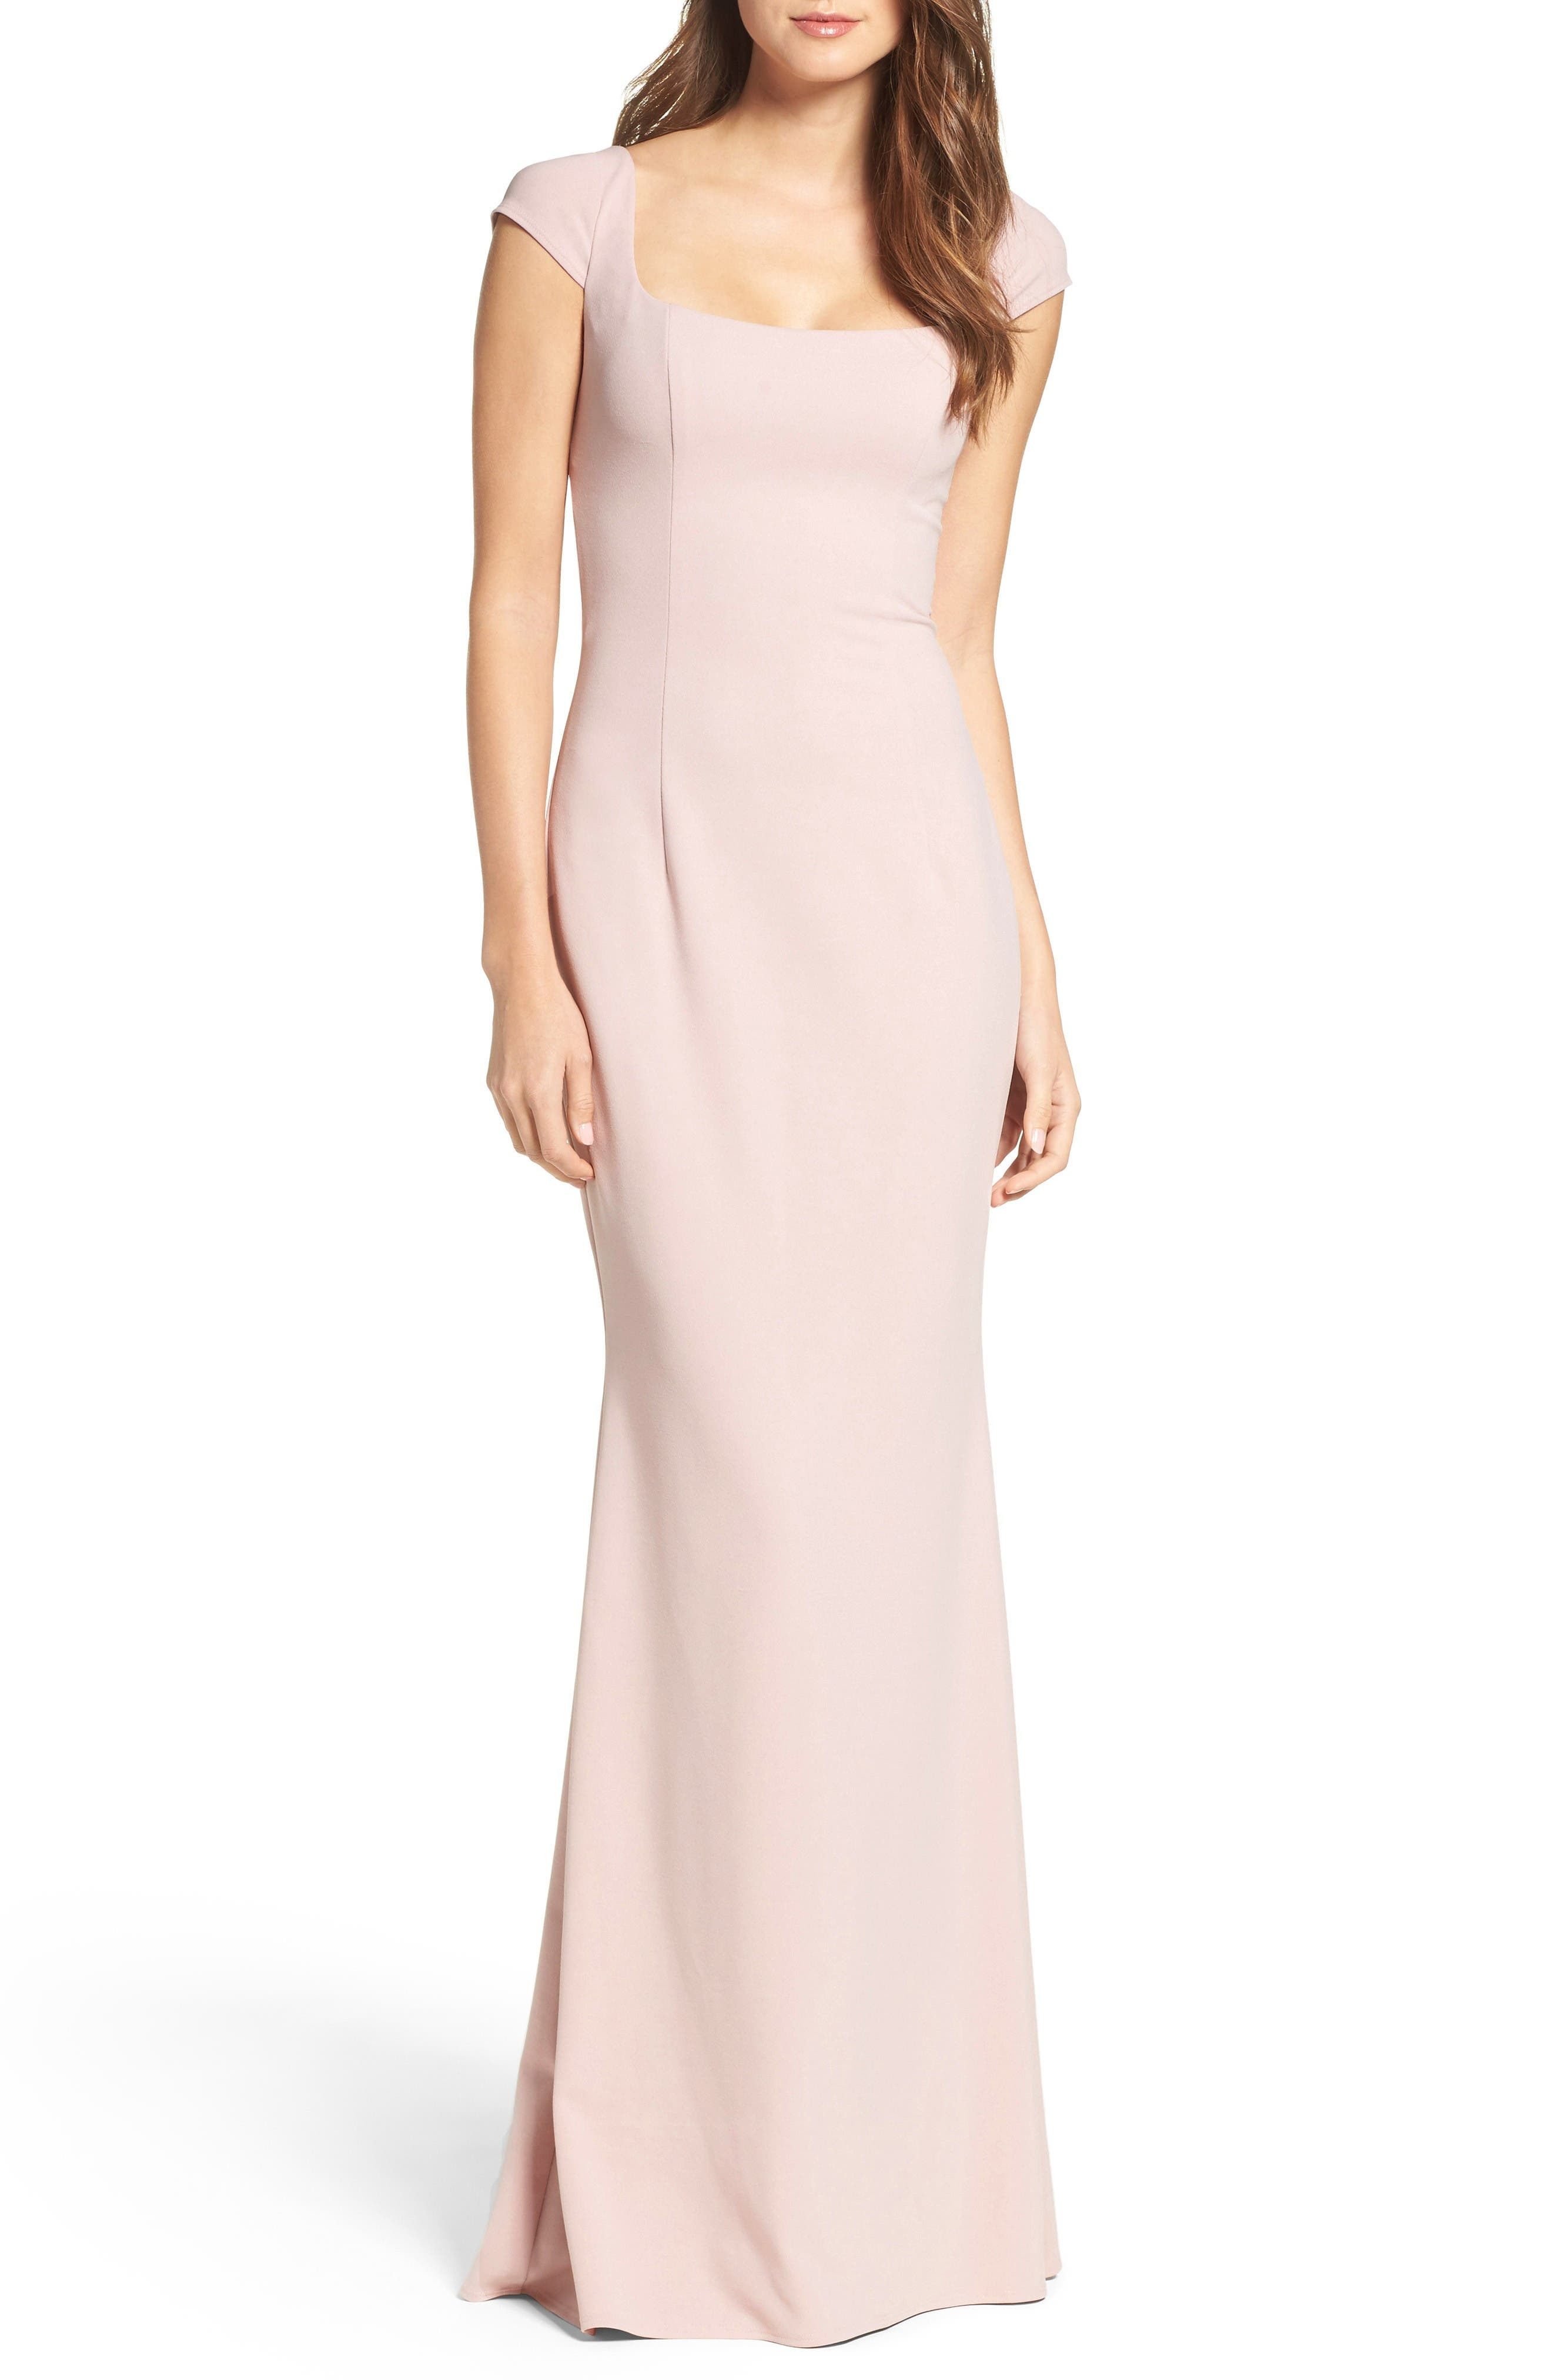 Katie May Georgia Crepe Gown